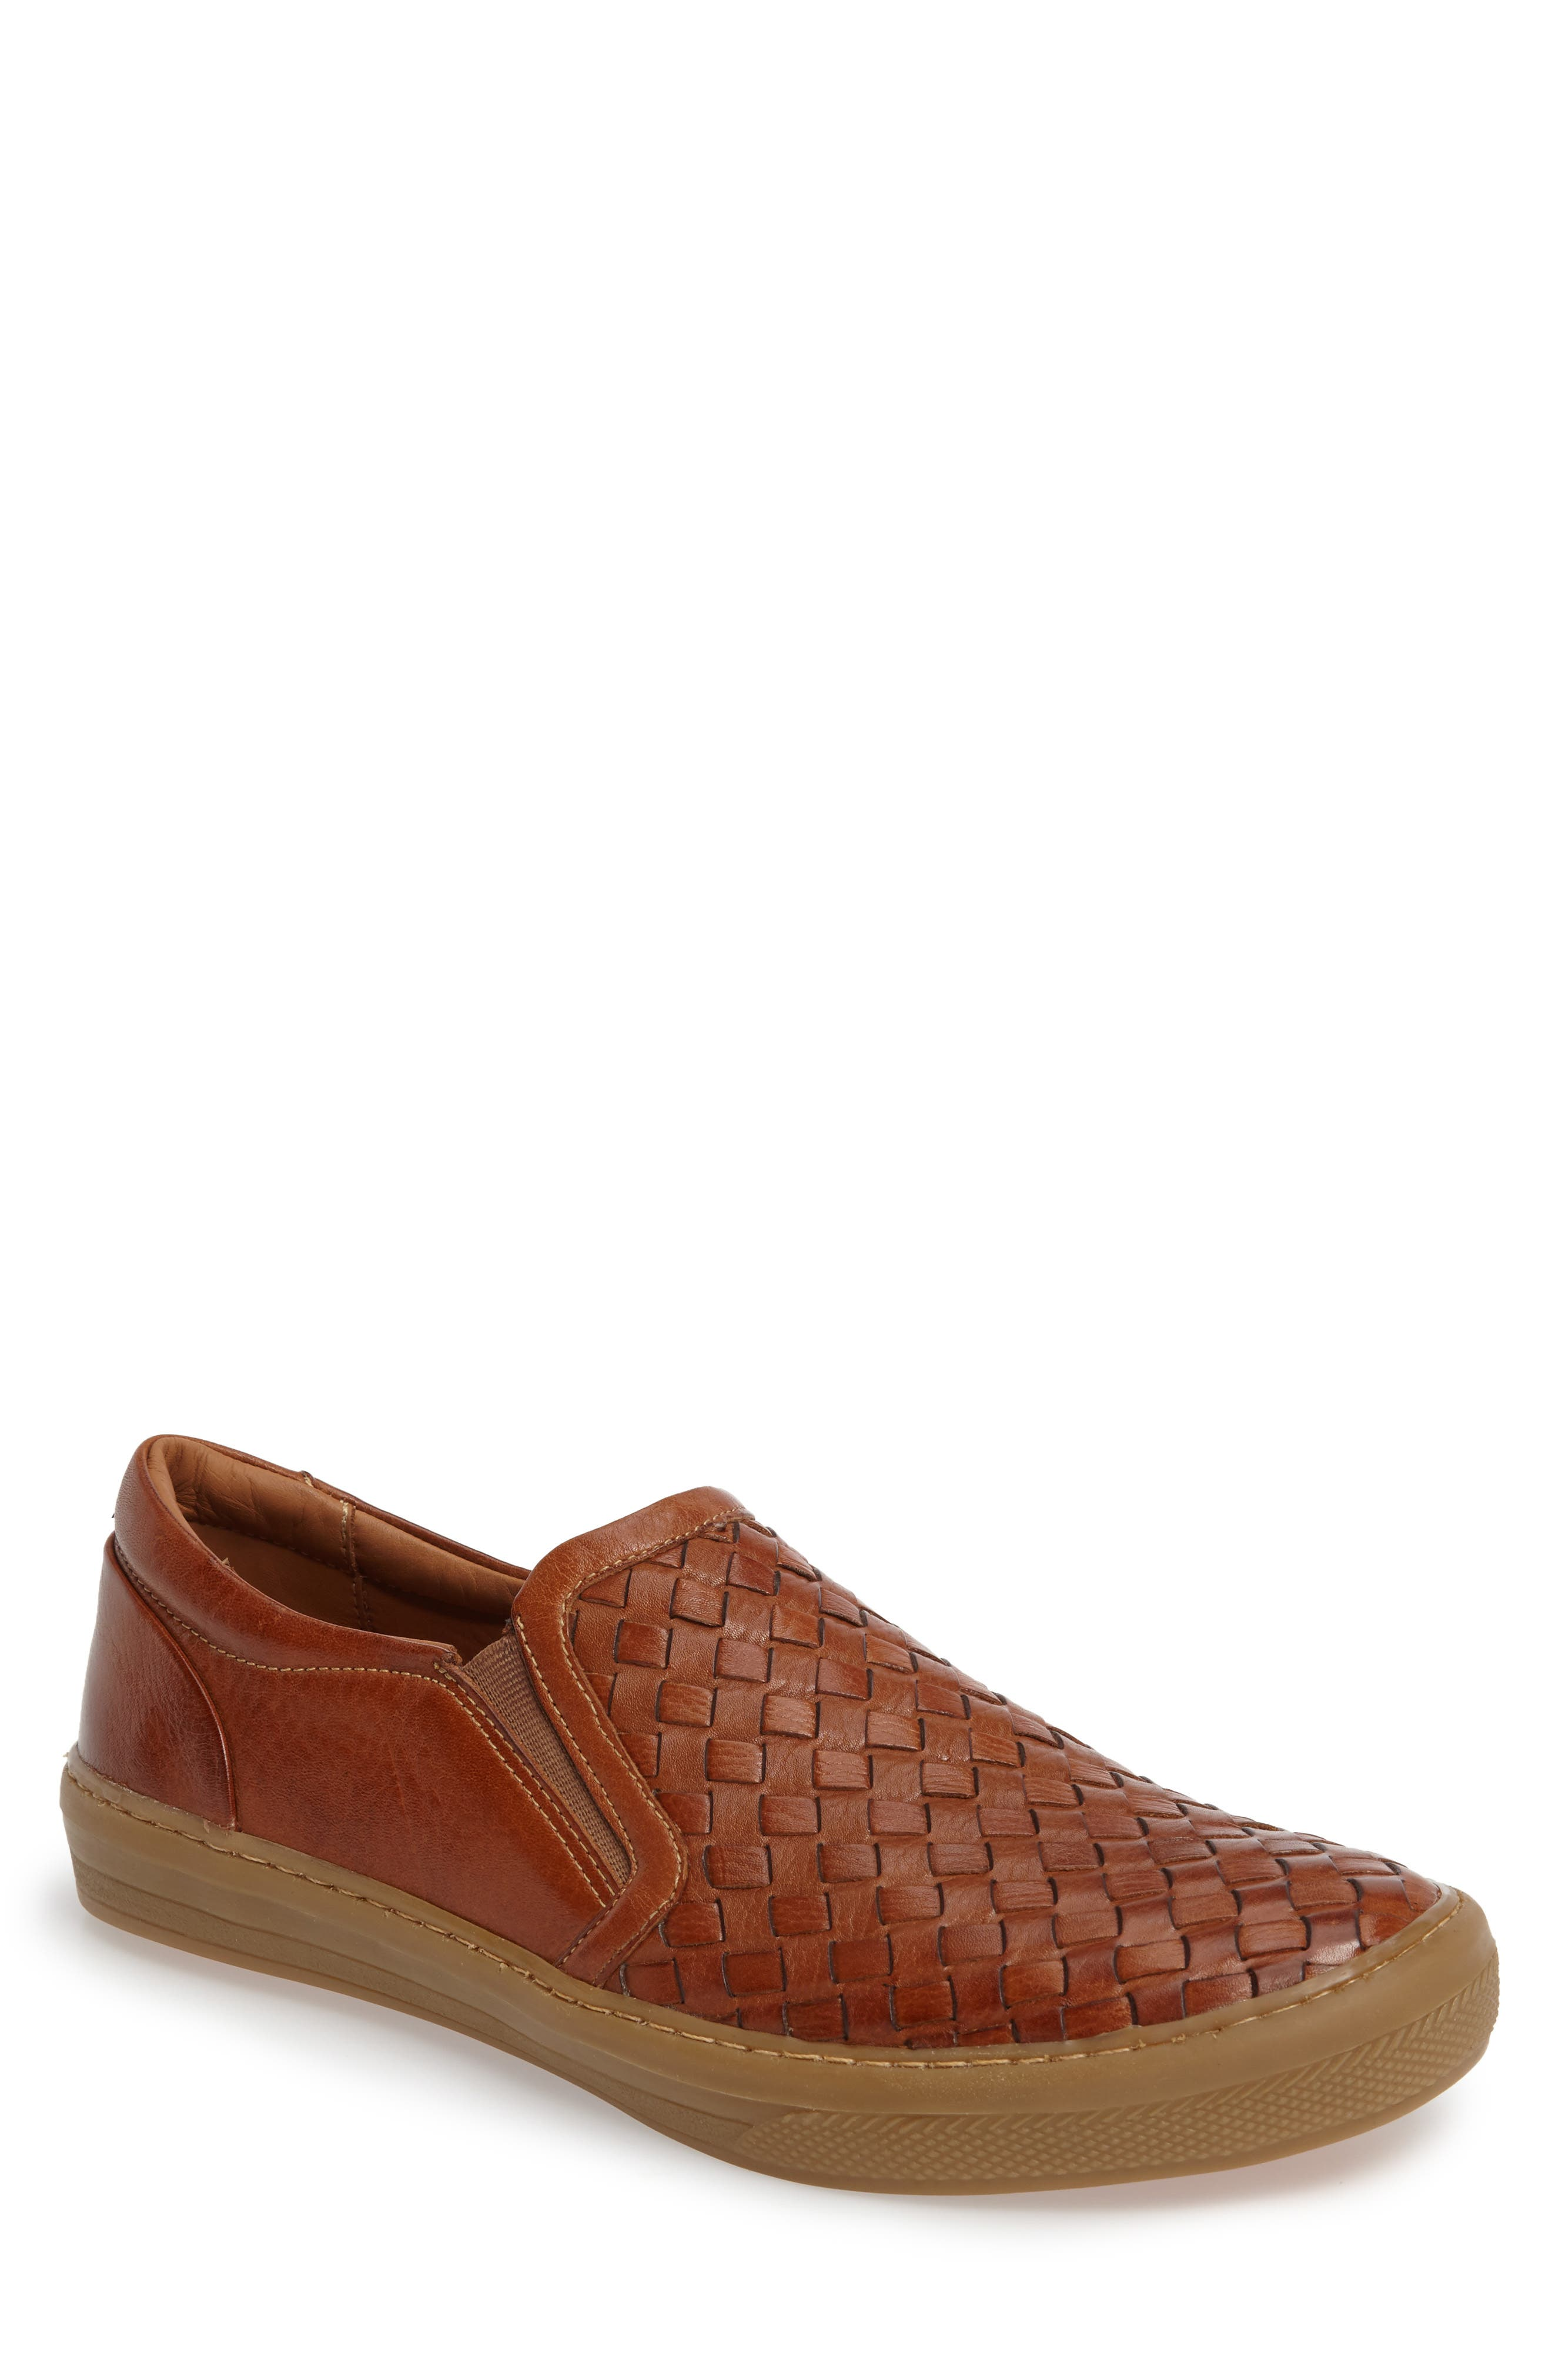 Anatomic & Co. Bastos Woven Slip-On (Men)